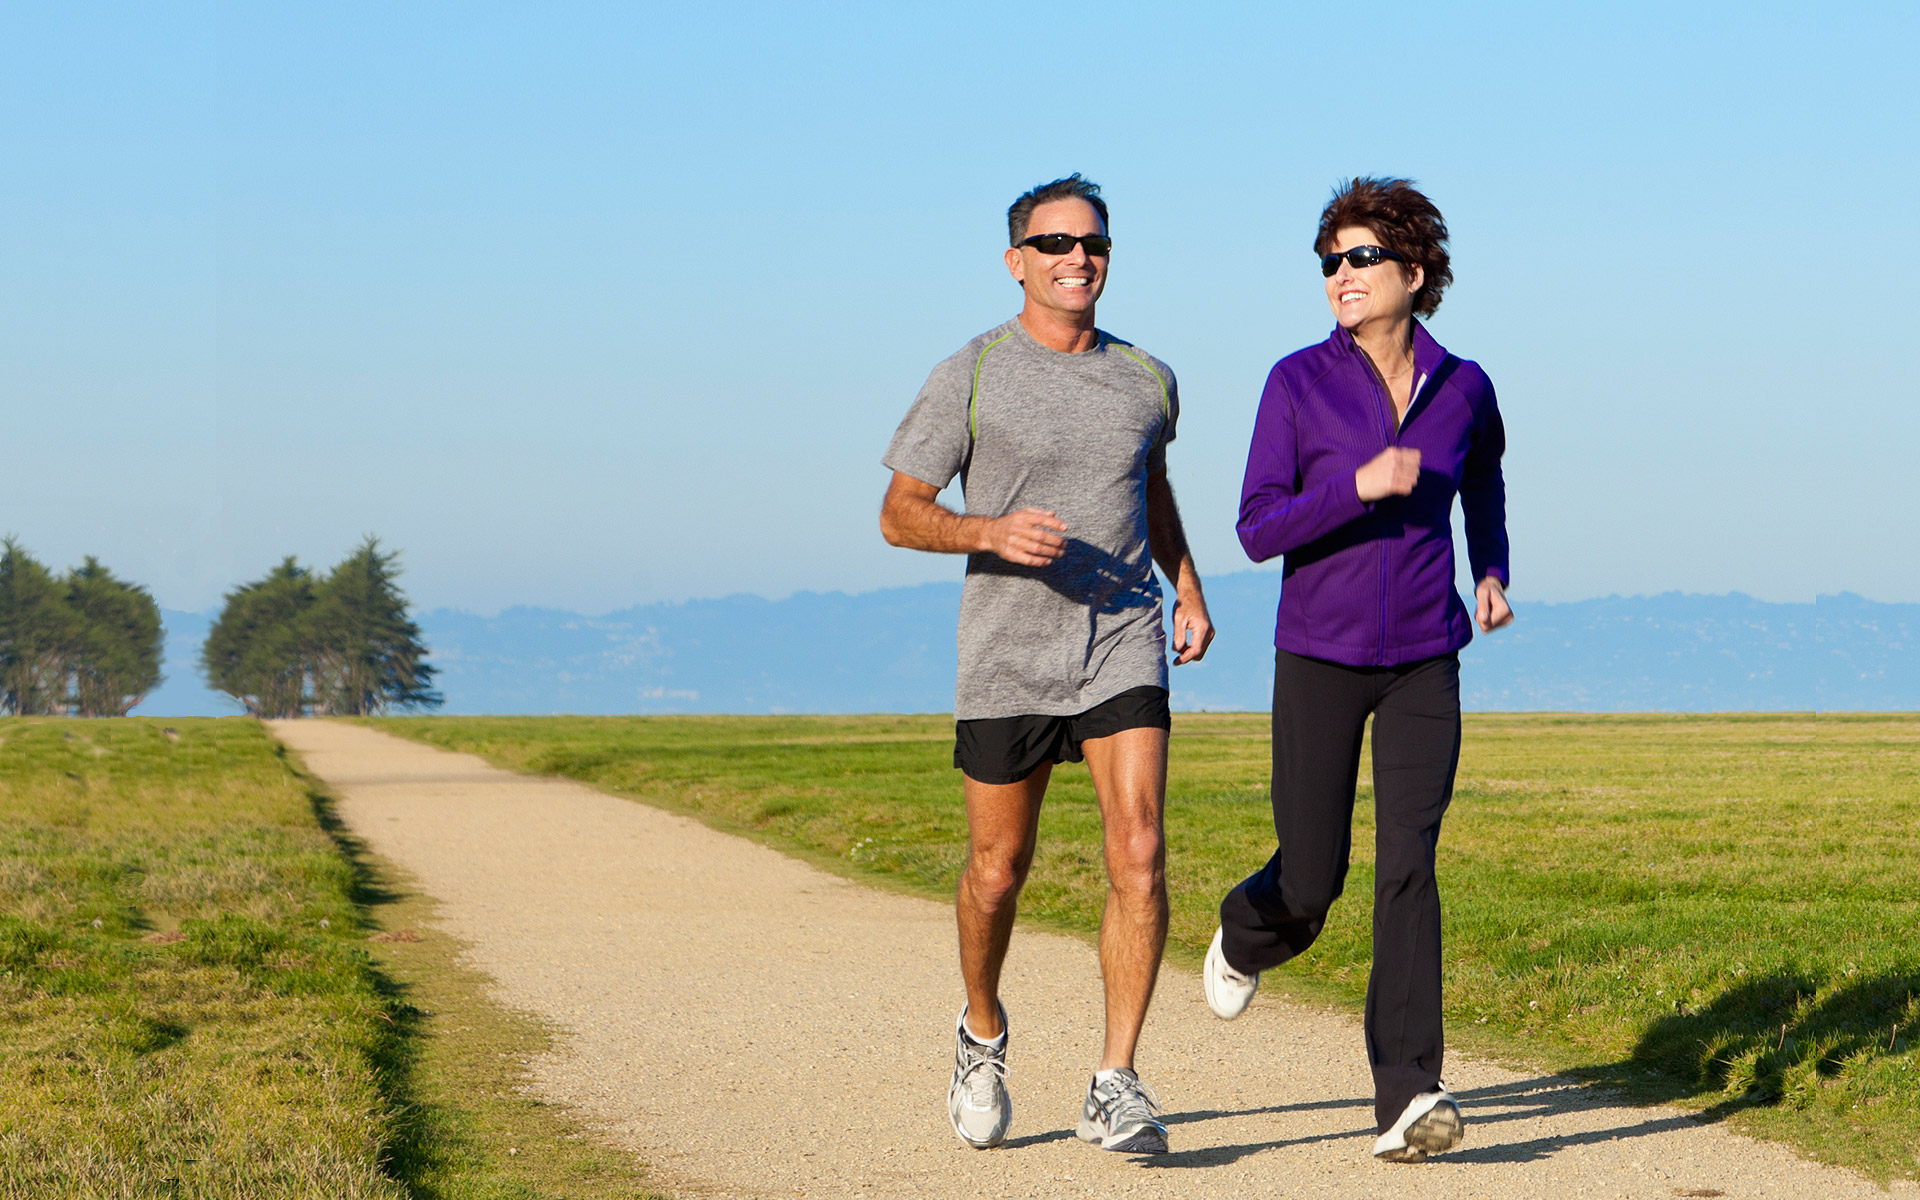 Man and woman running on a jogging path